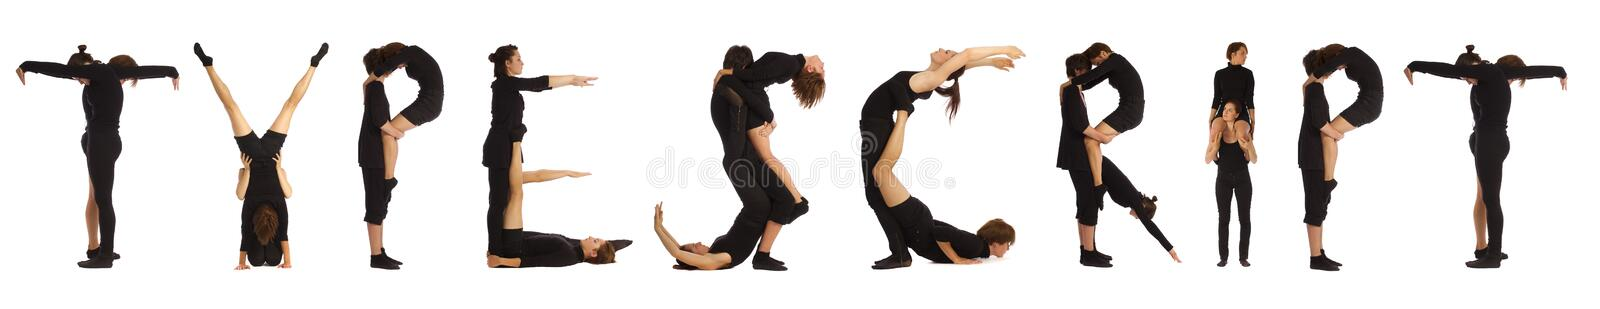 Black dressed people forming TYPESCRIPT word royalty free stock photography